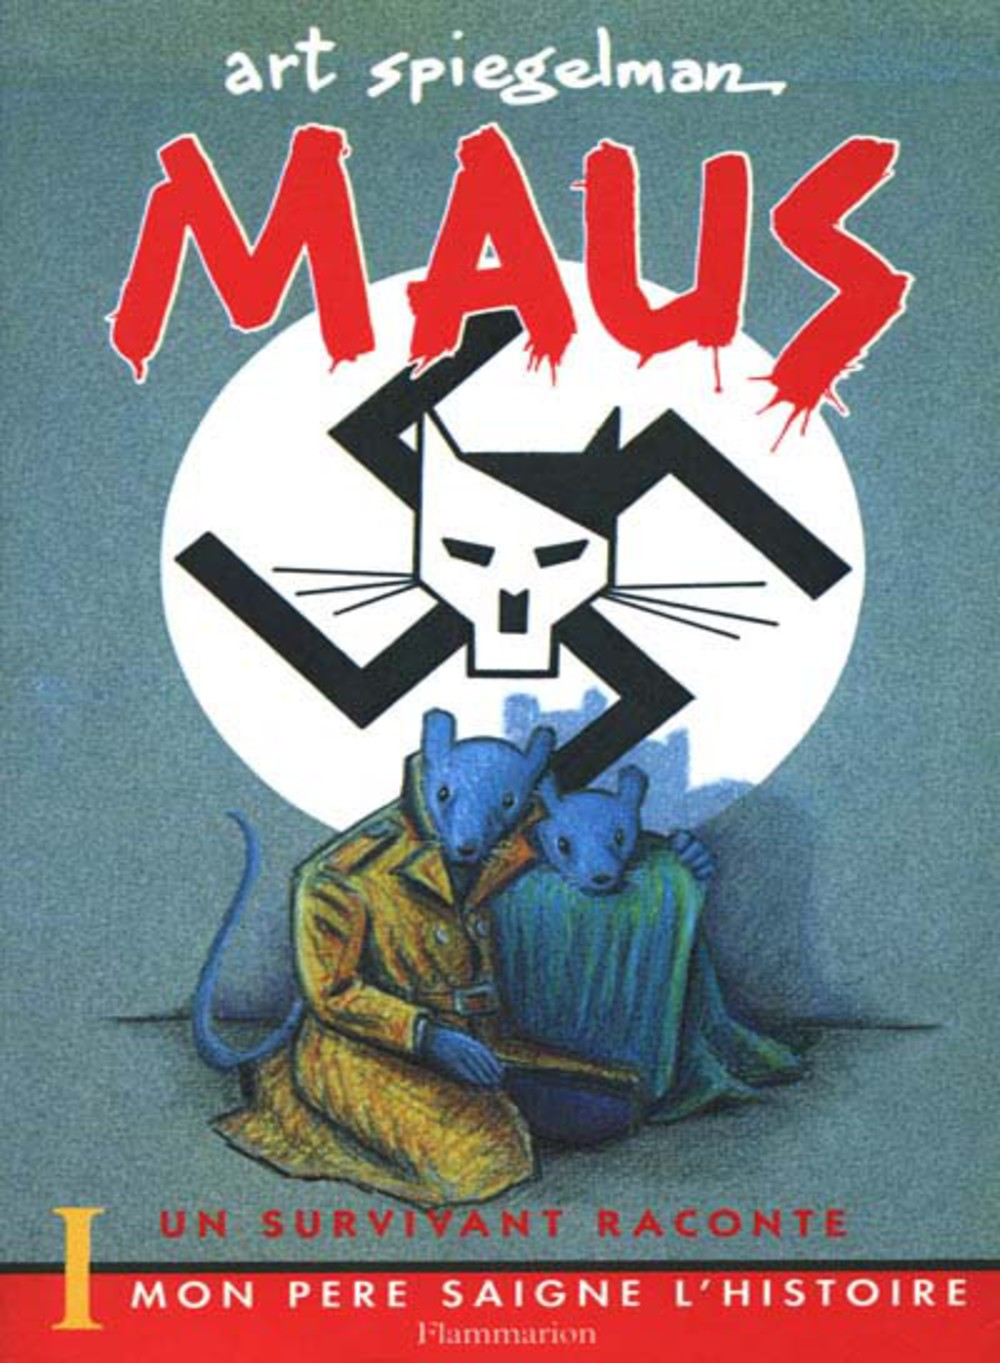 experiences and hardships of the holocaust in maus a graphic novel by art spiegelman In maus, written and illustrated by art spiegelman, art (artie) wants to know about his father's experience in the holocaust some could say artie was exploiting his father, but some could also say that he was making his father's story known.